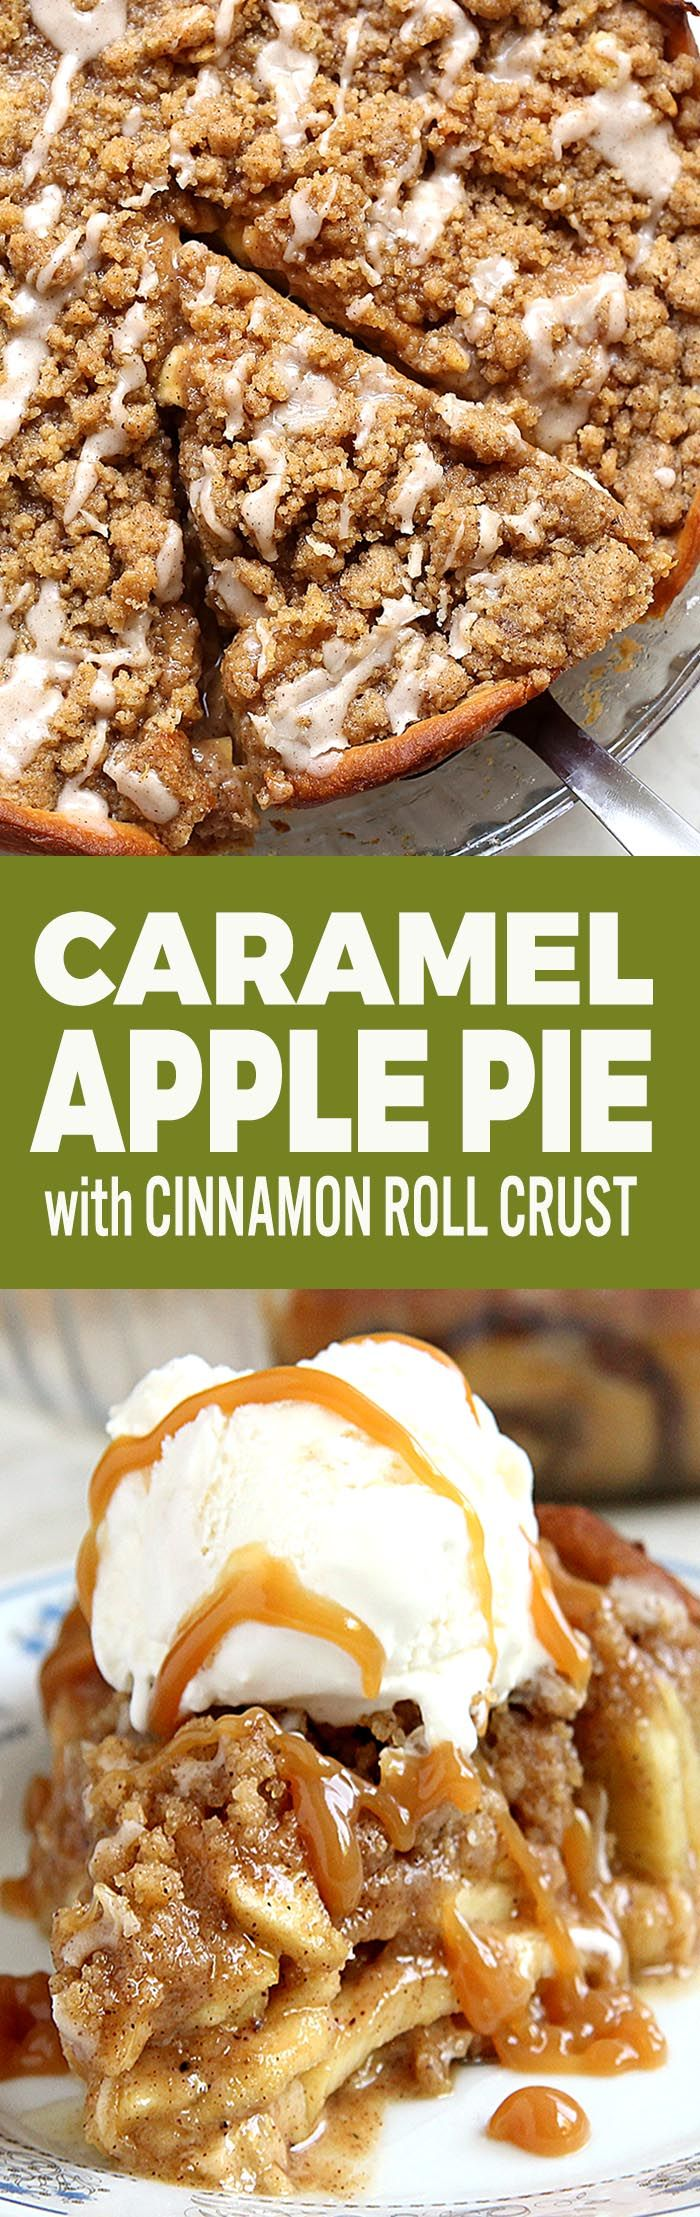 Delicious Cinnamon Roll Apple Pie that uses homemade apple pie filling, refrigerated cinnamon rolls, and crumb topping to create a delectable, easy FALL Dessert.